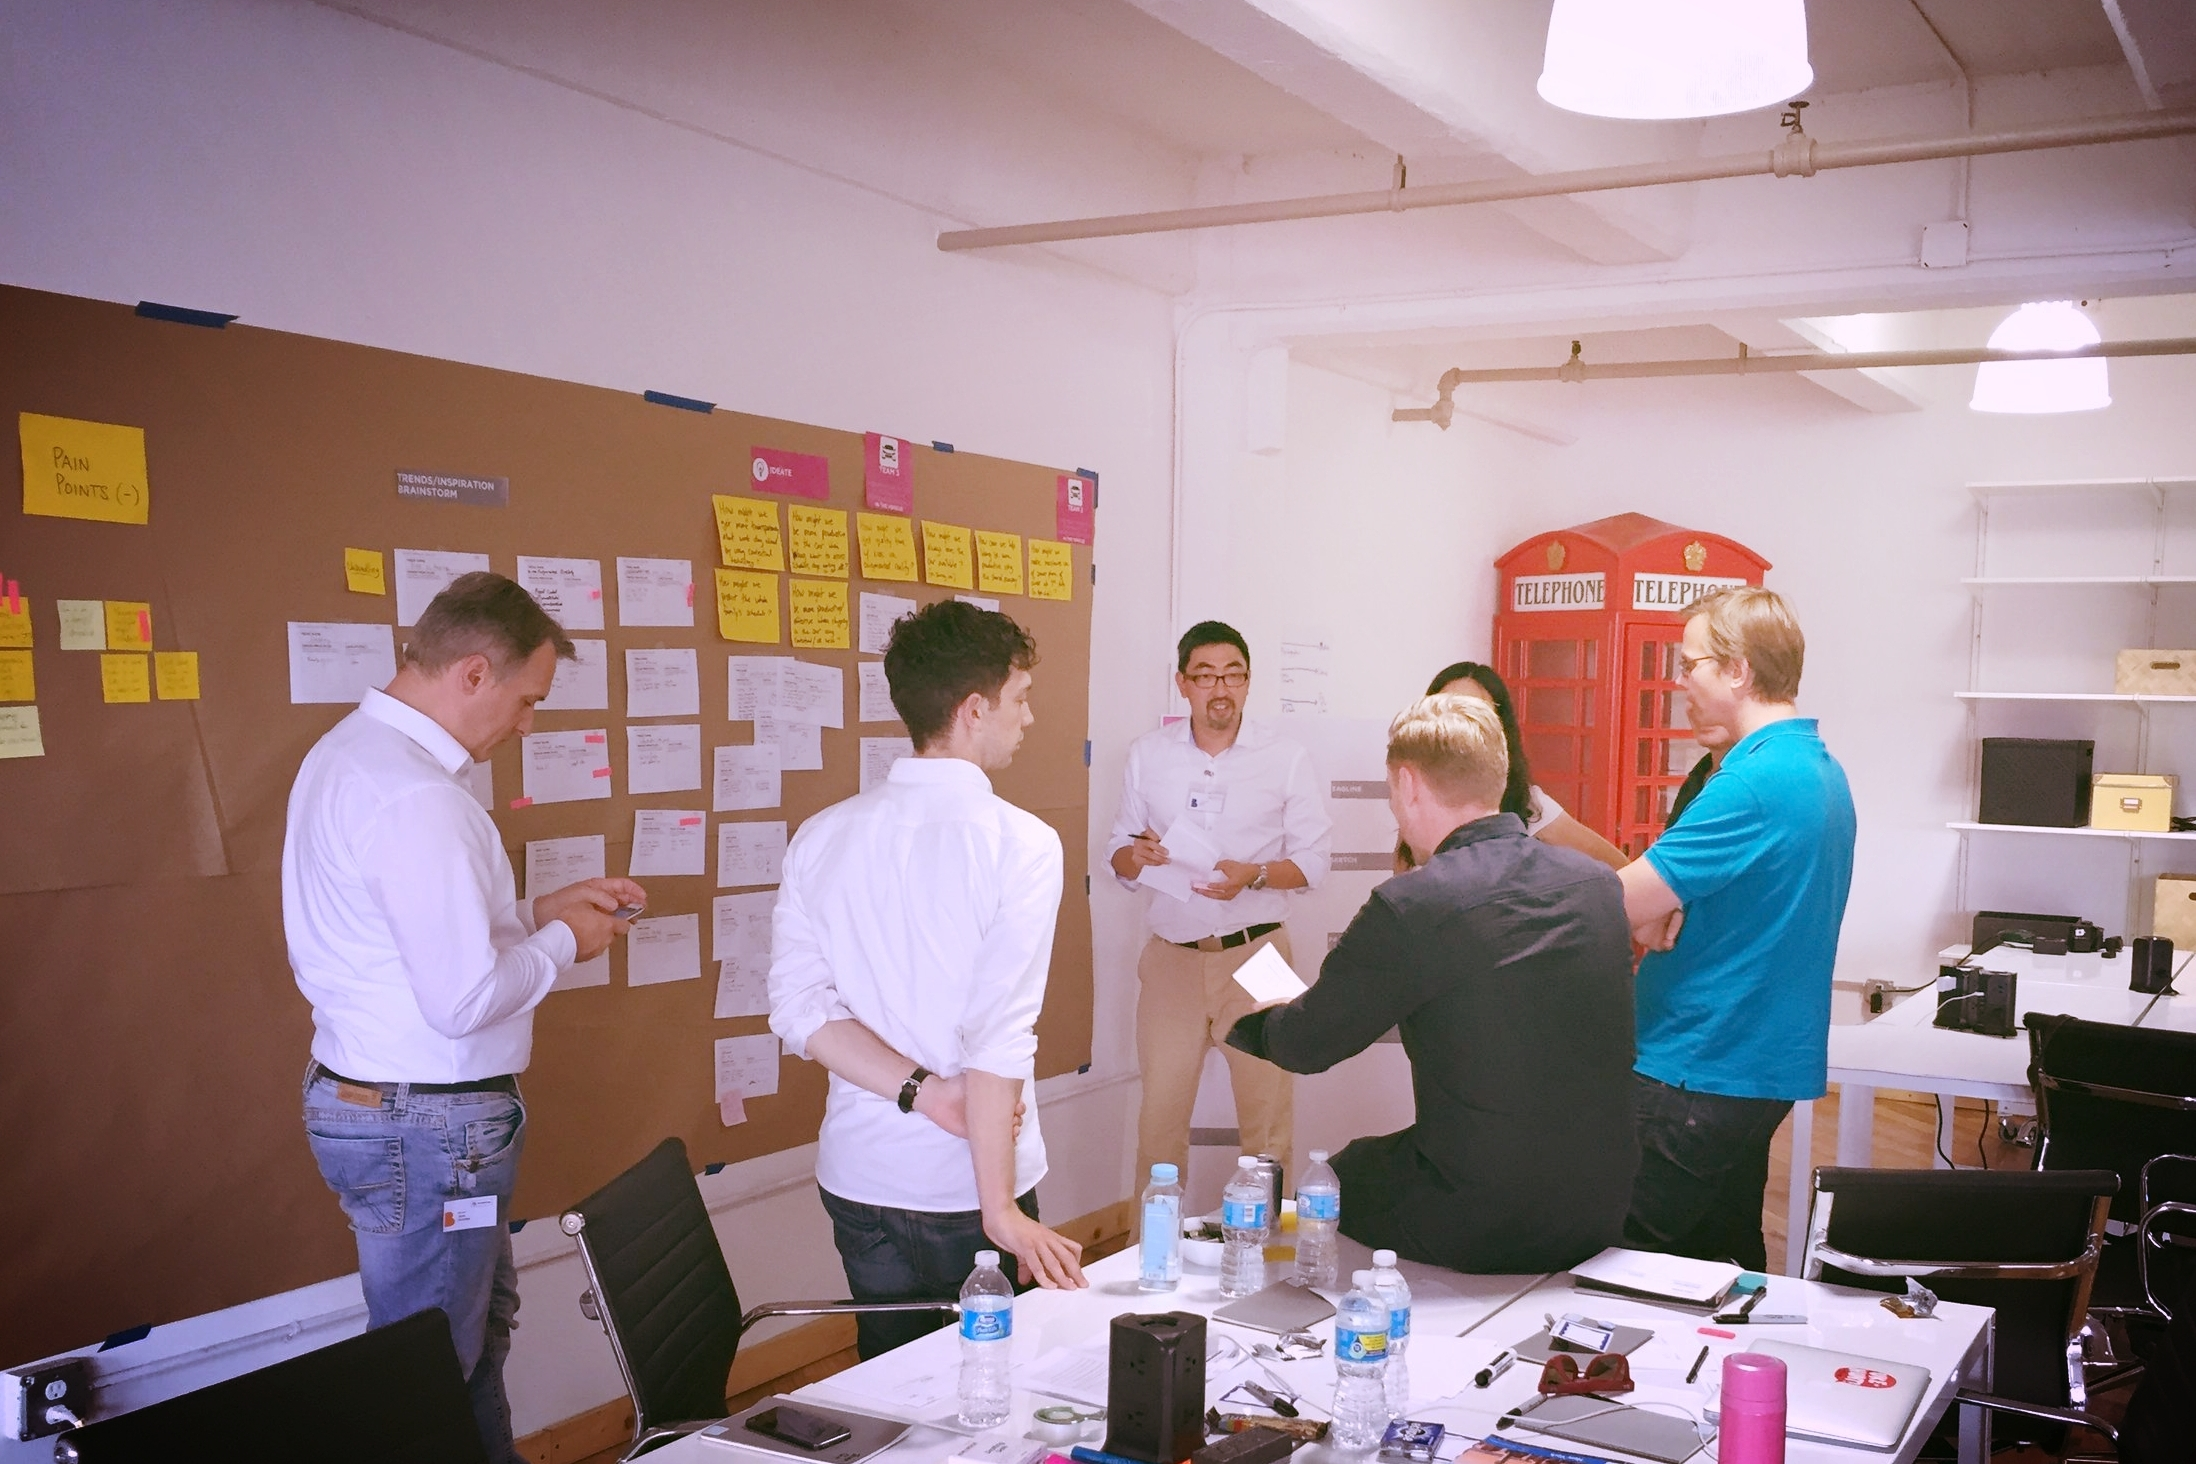 Design Thinking workshop with our partner The Design Gym and participants in New York